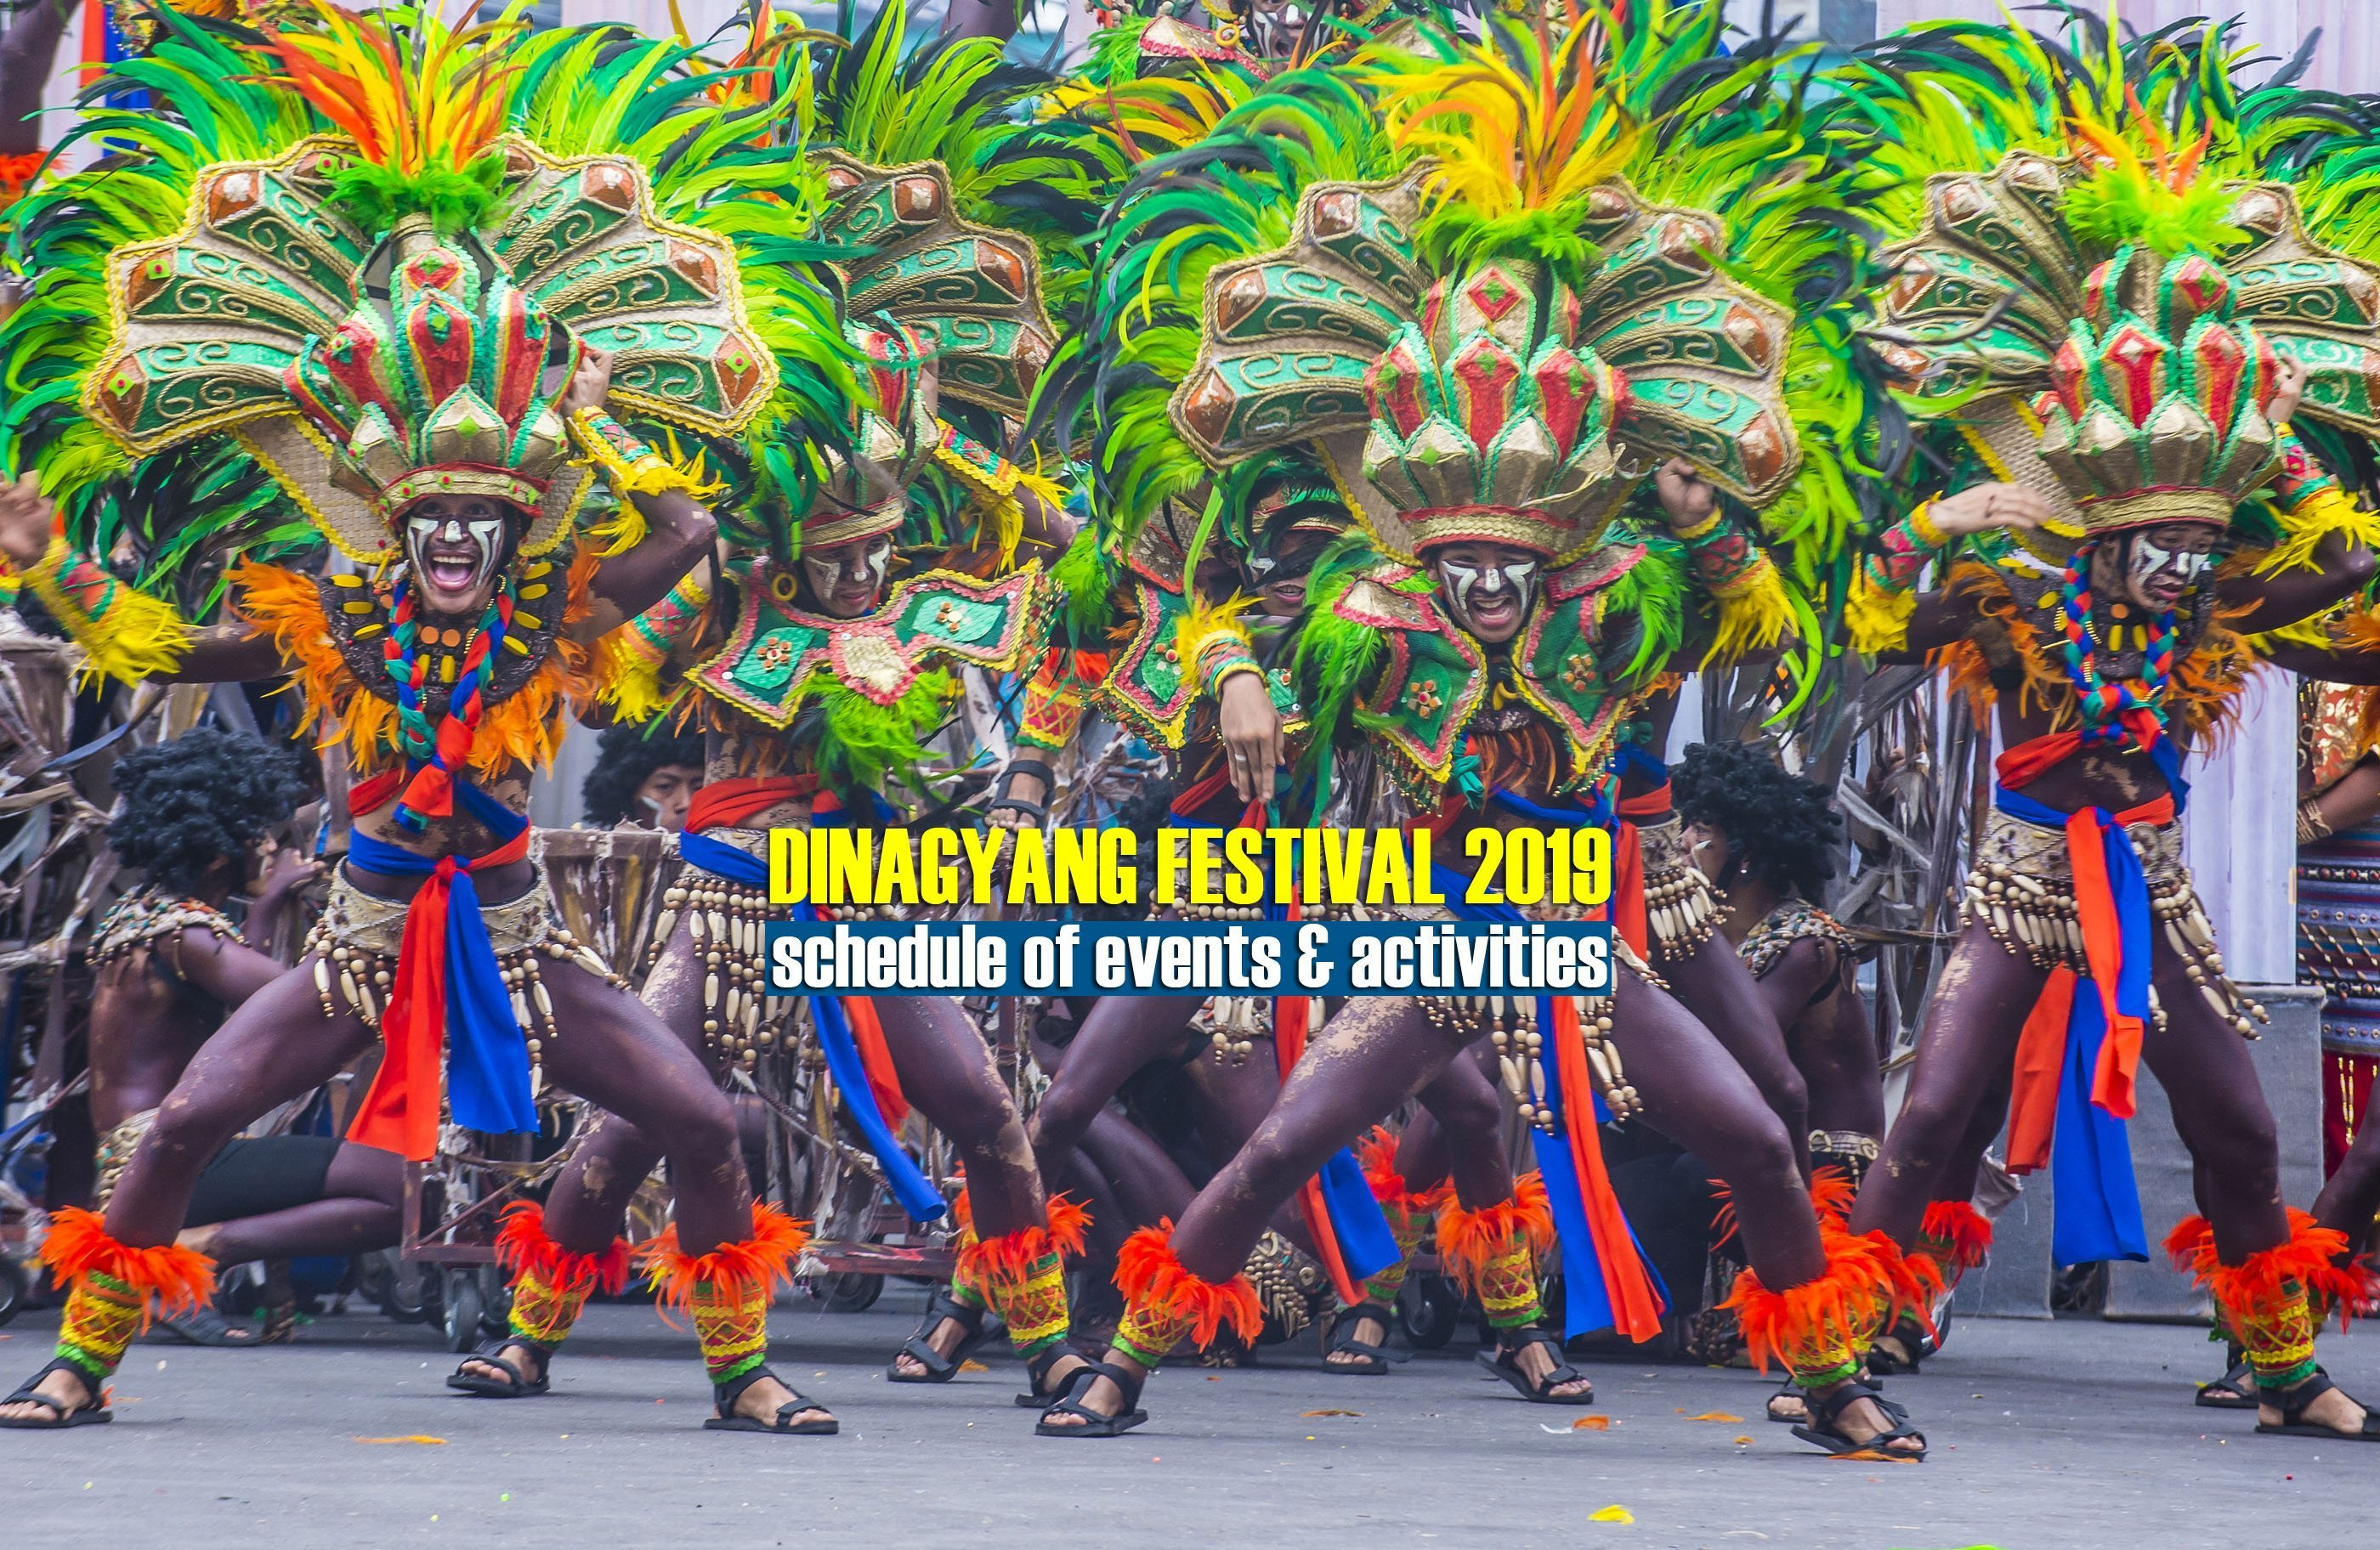 Dinagyang Festival 2019: Schedule of Events and Activities